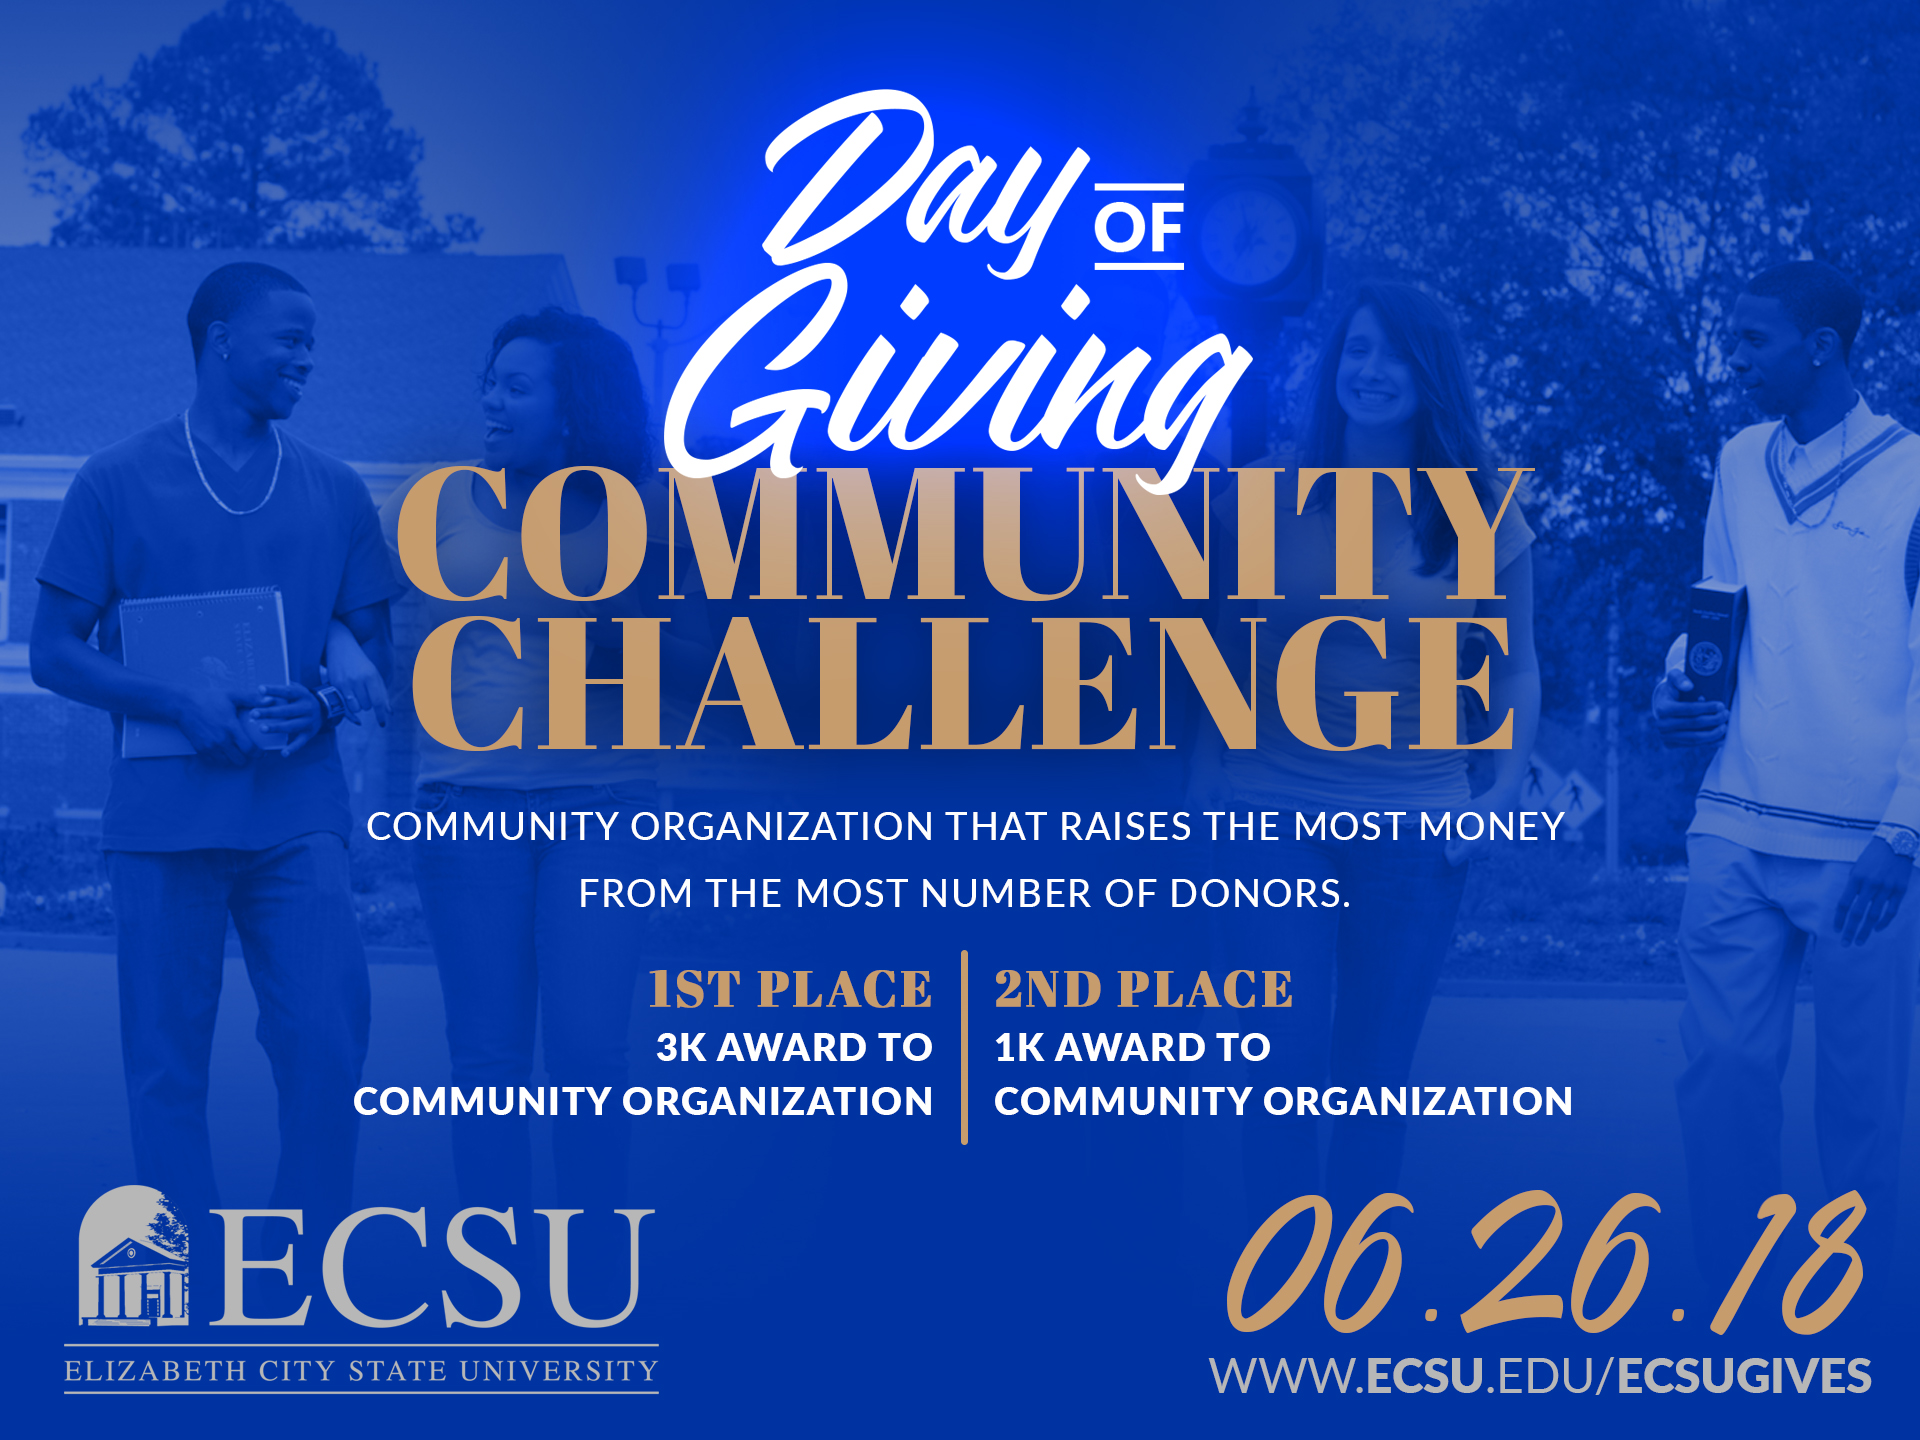 Ecsu day of giving community challenge5